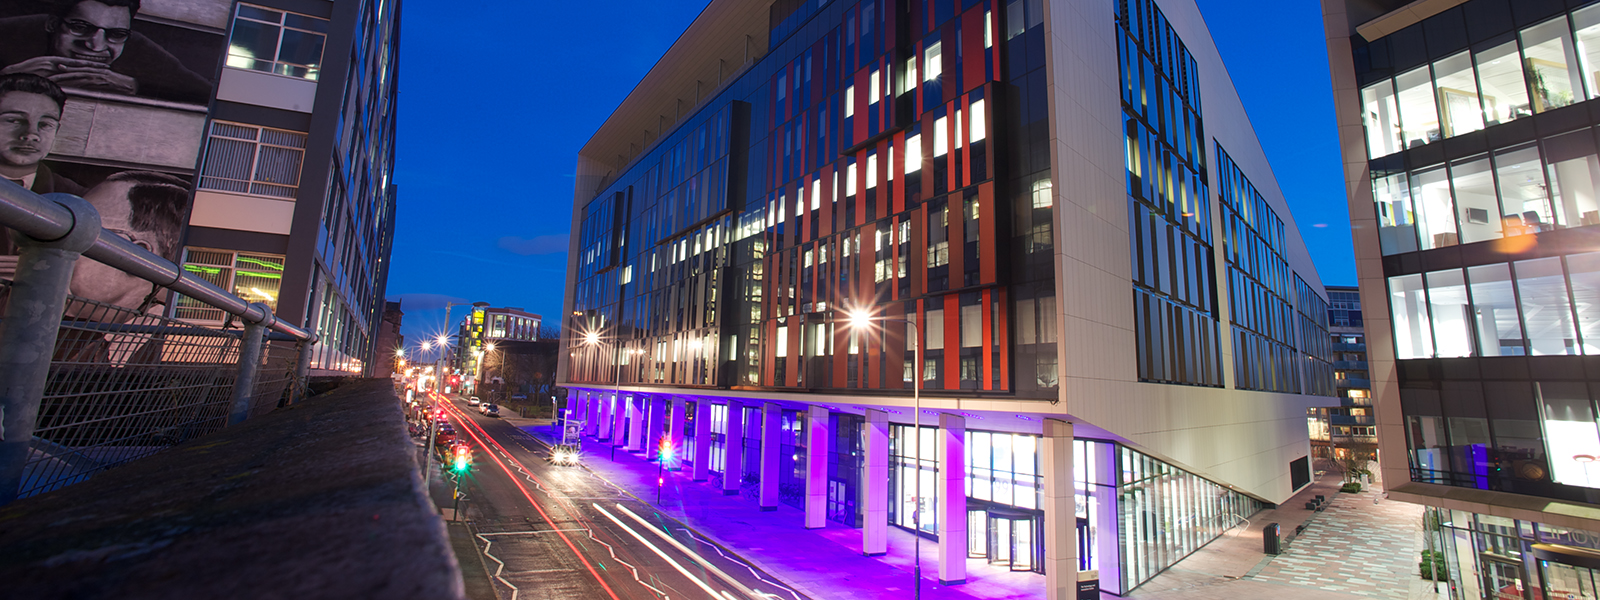 Technology & Innovation Centre.